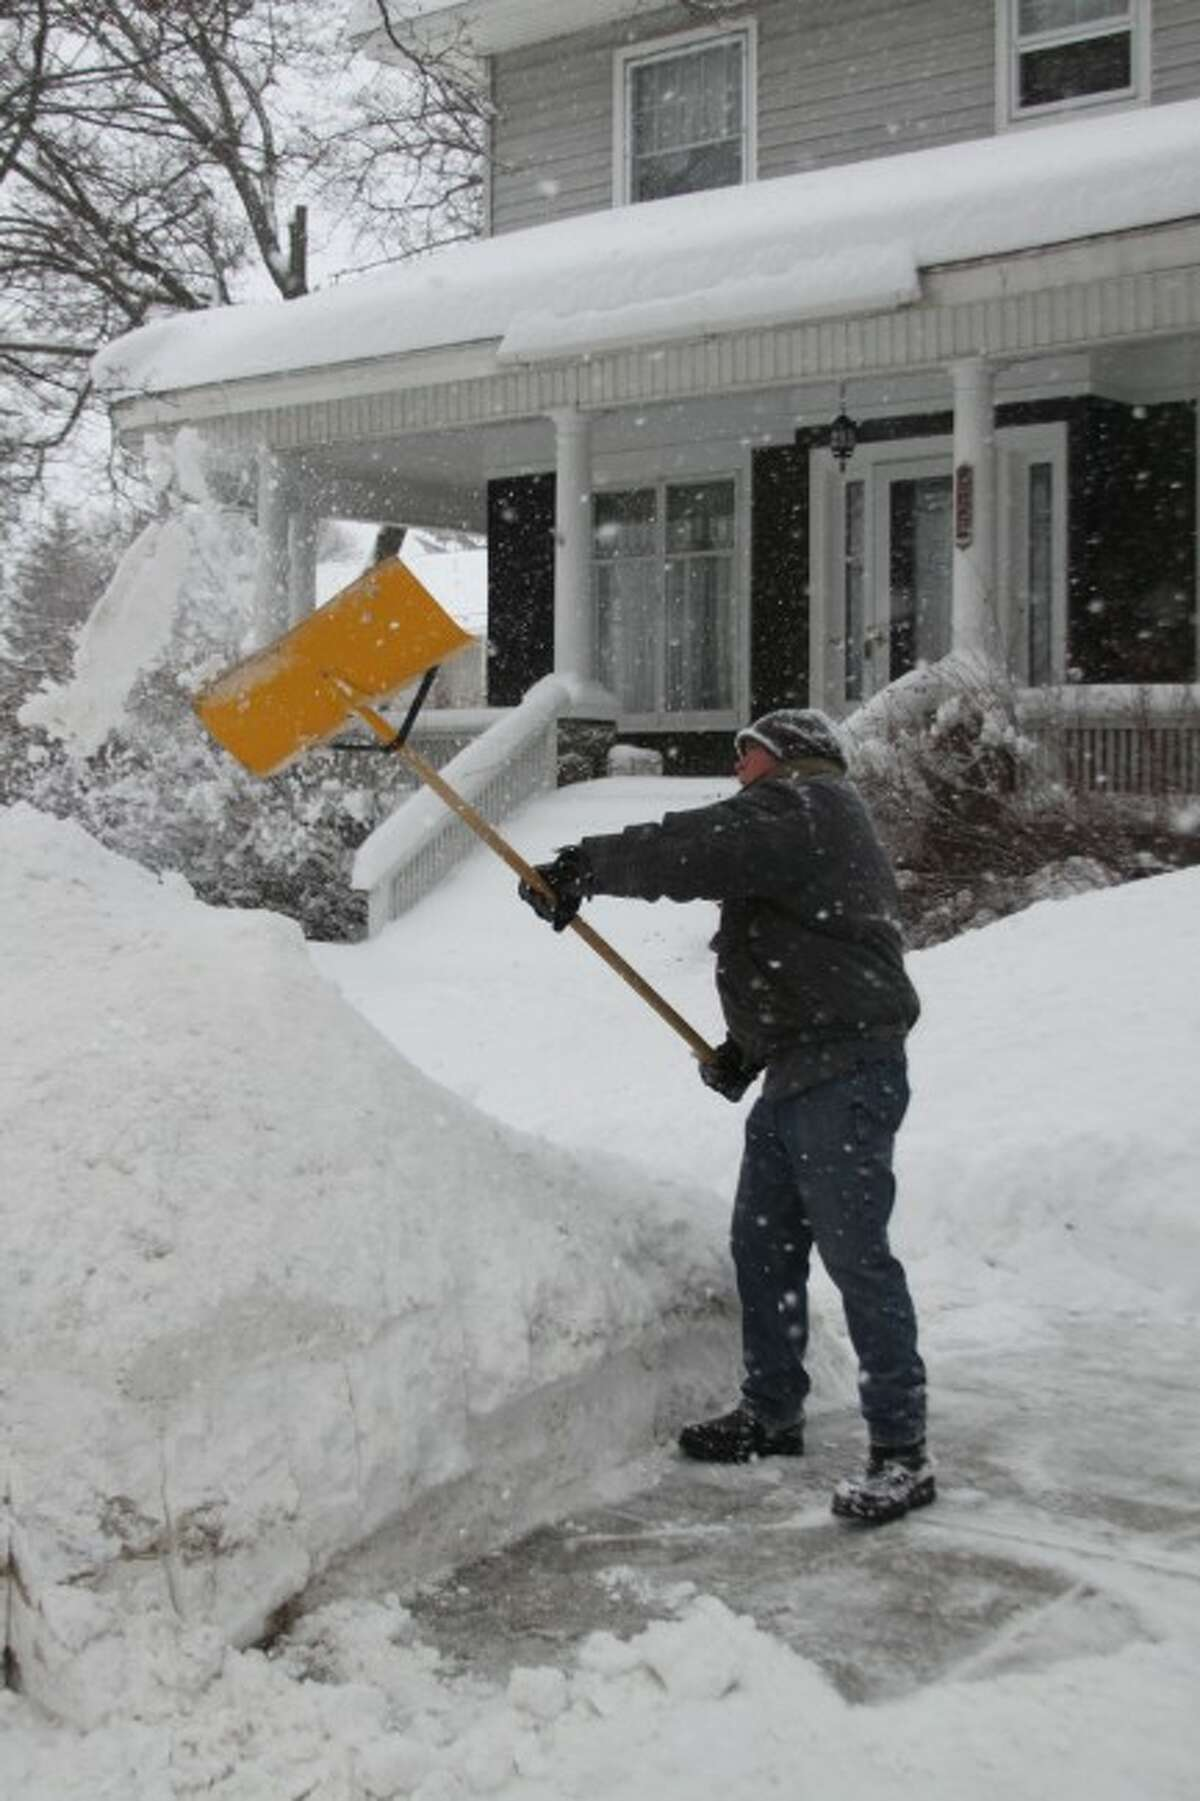 People should use extreme care when shoveling snow to aovid injury.